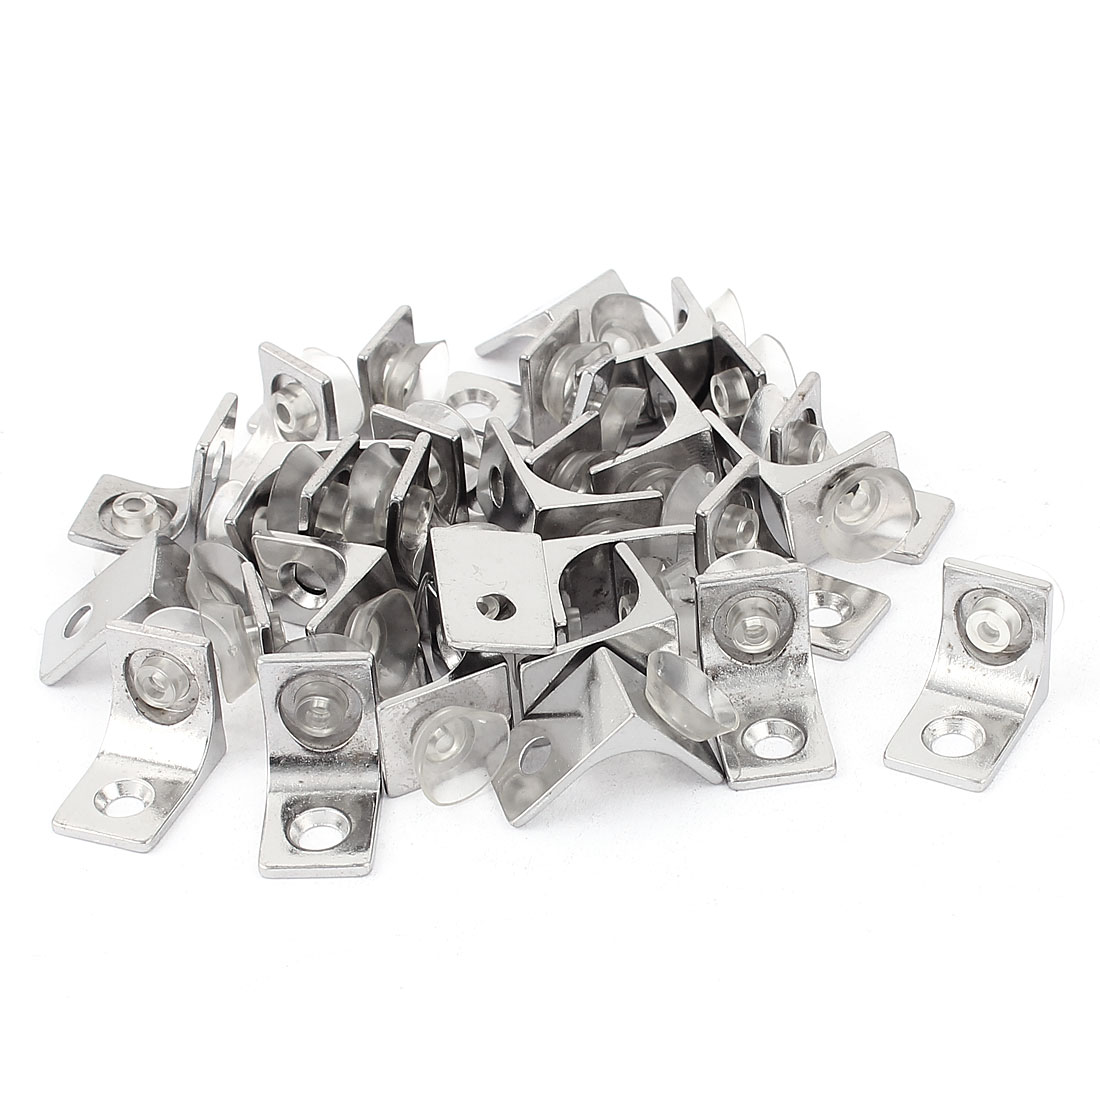 30 Pcs Glass Shelf Right Angle Suction Cup Fixing Fastener Clip Clamp Bracket